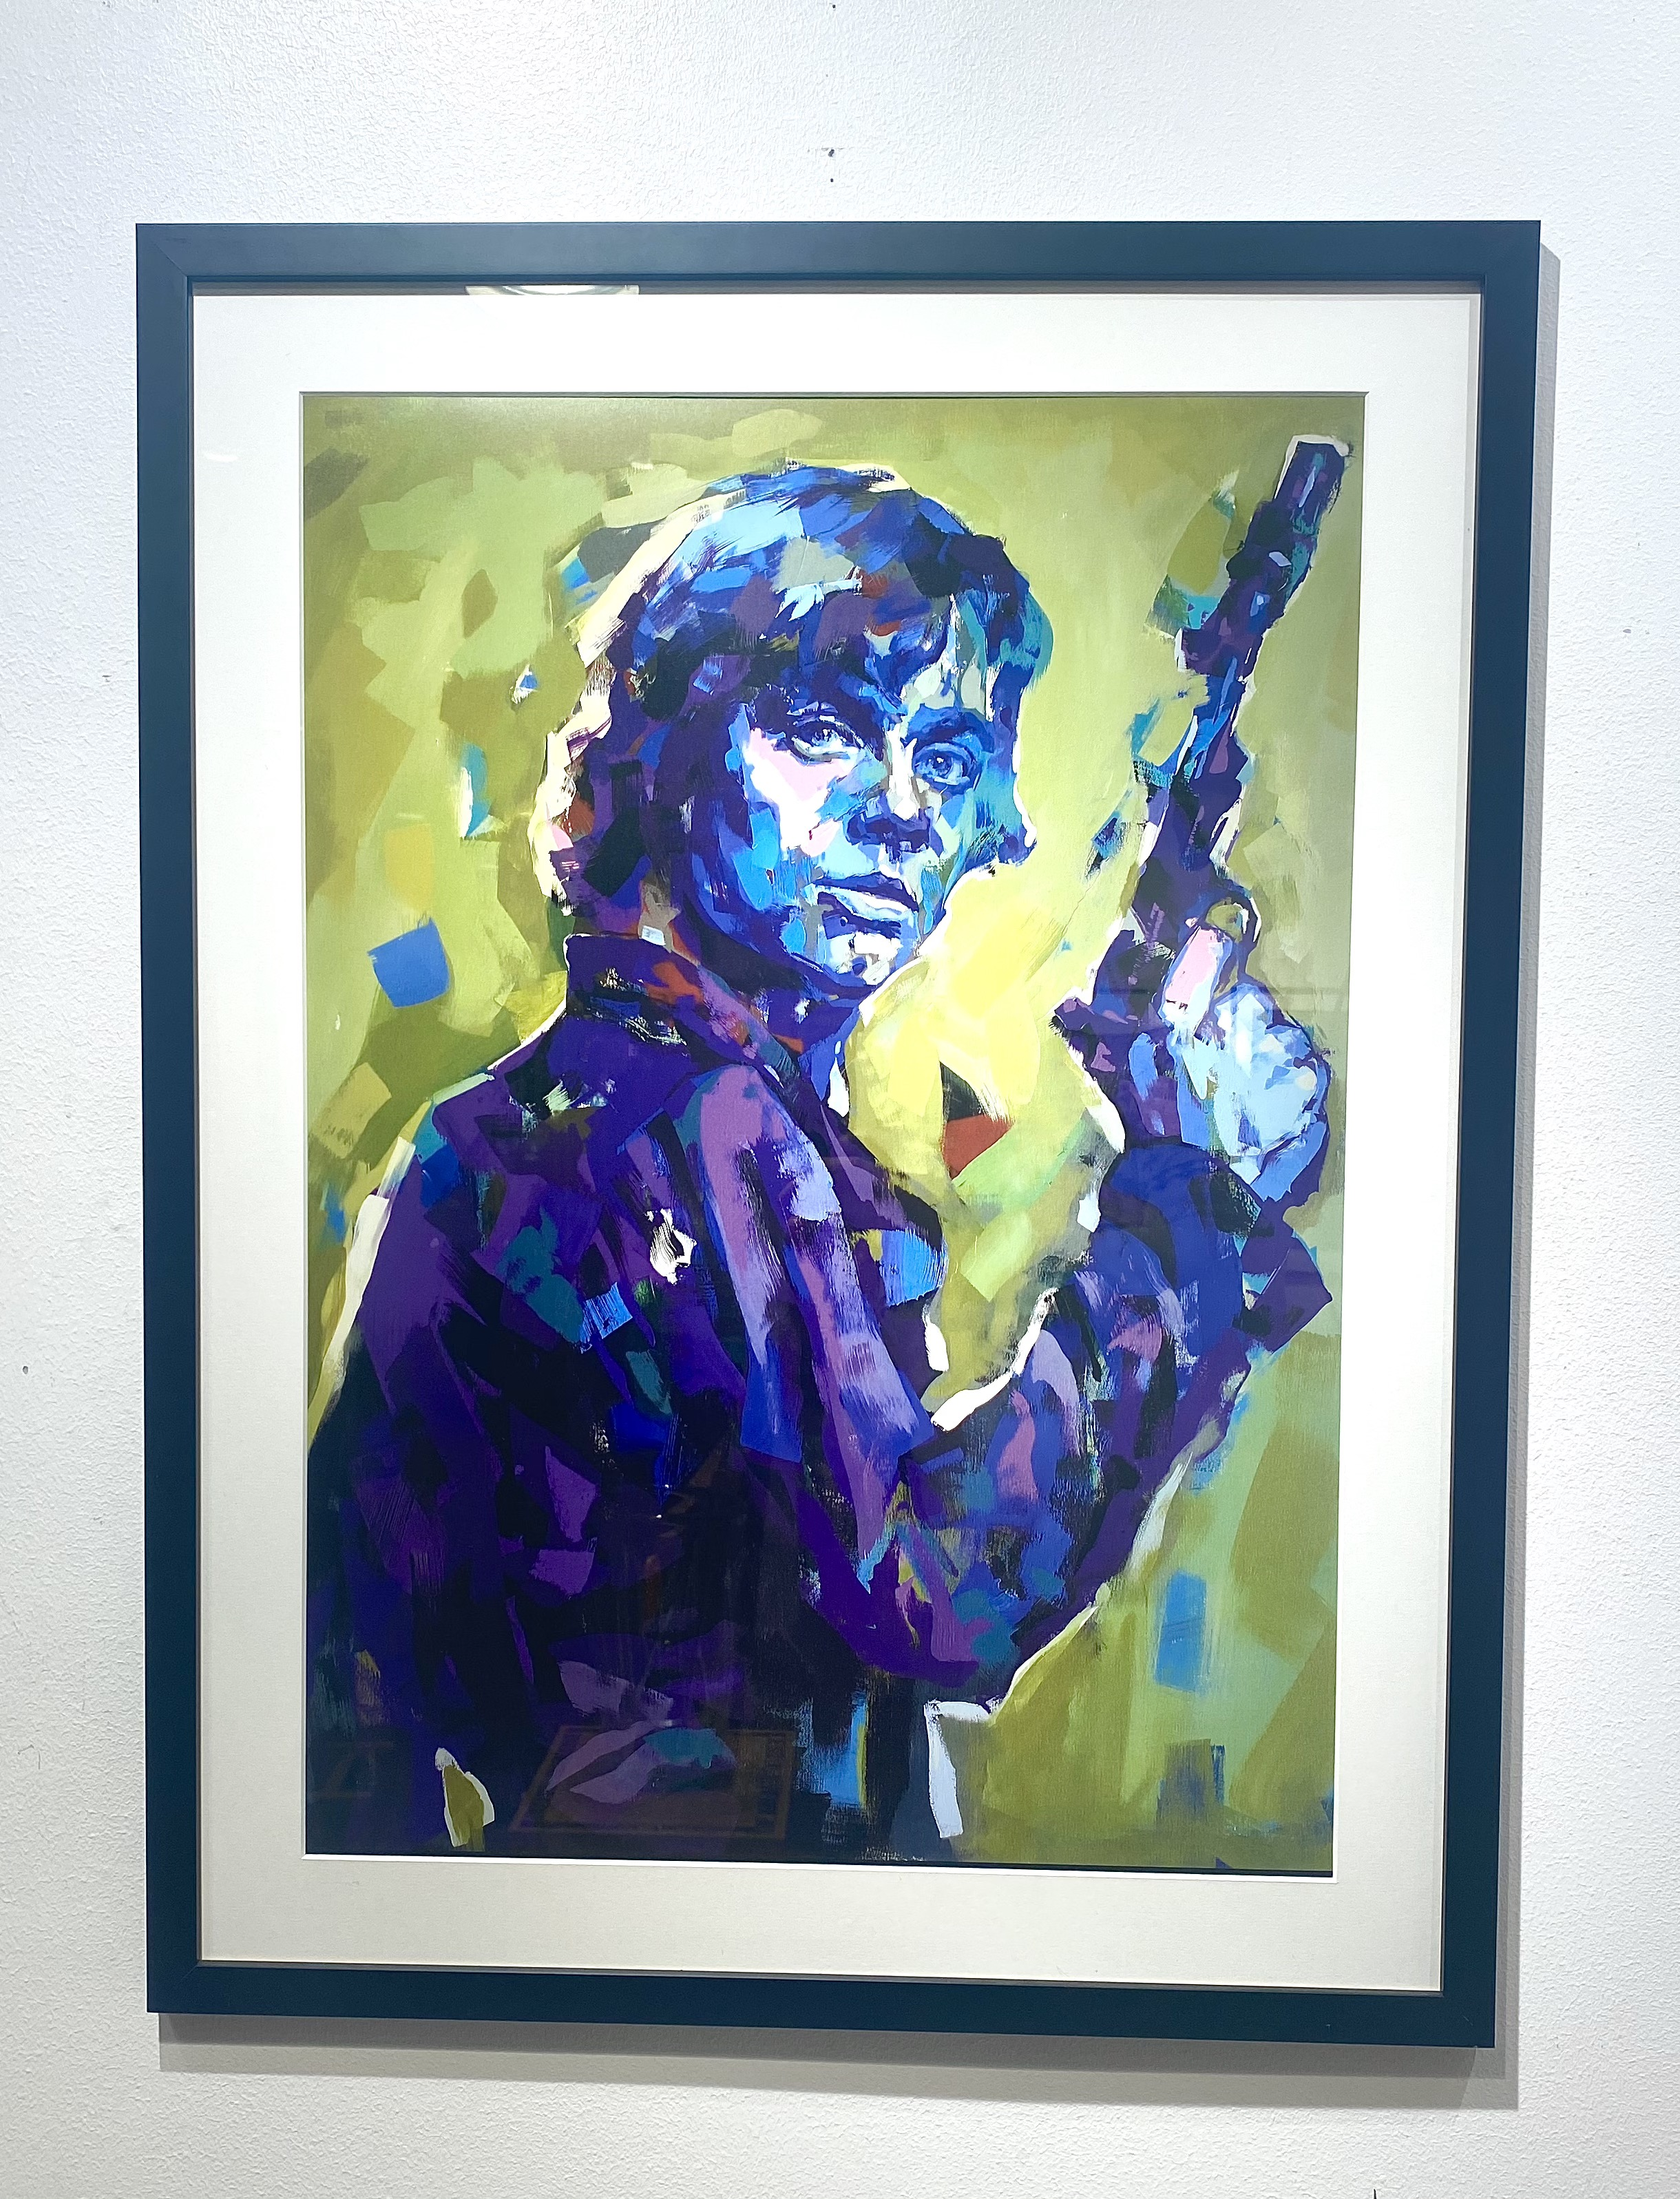 """Luke Skywalker"" Limited Edition av LEG 50x70 cm"